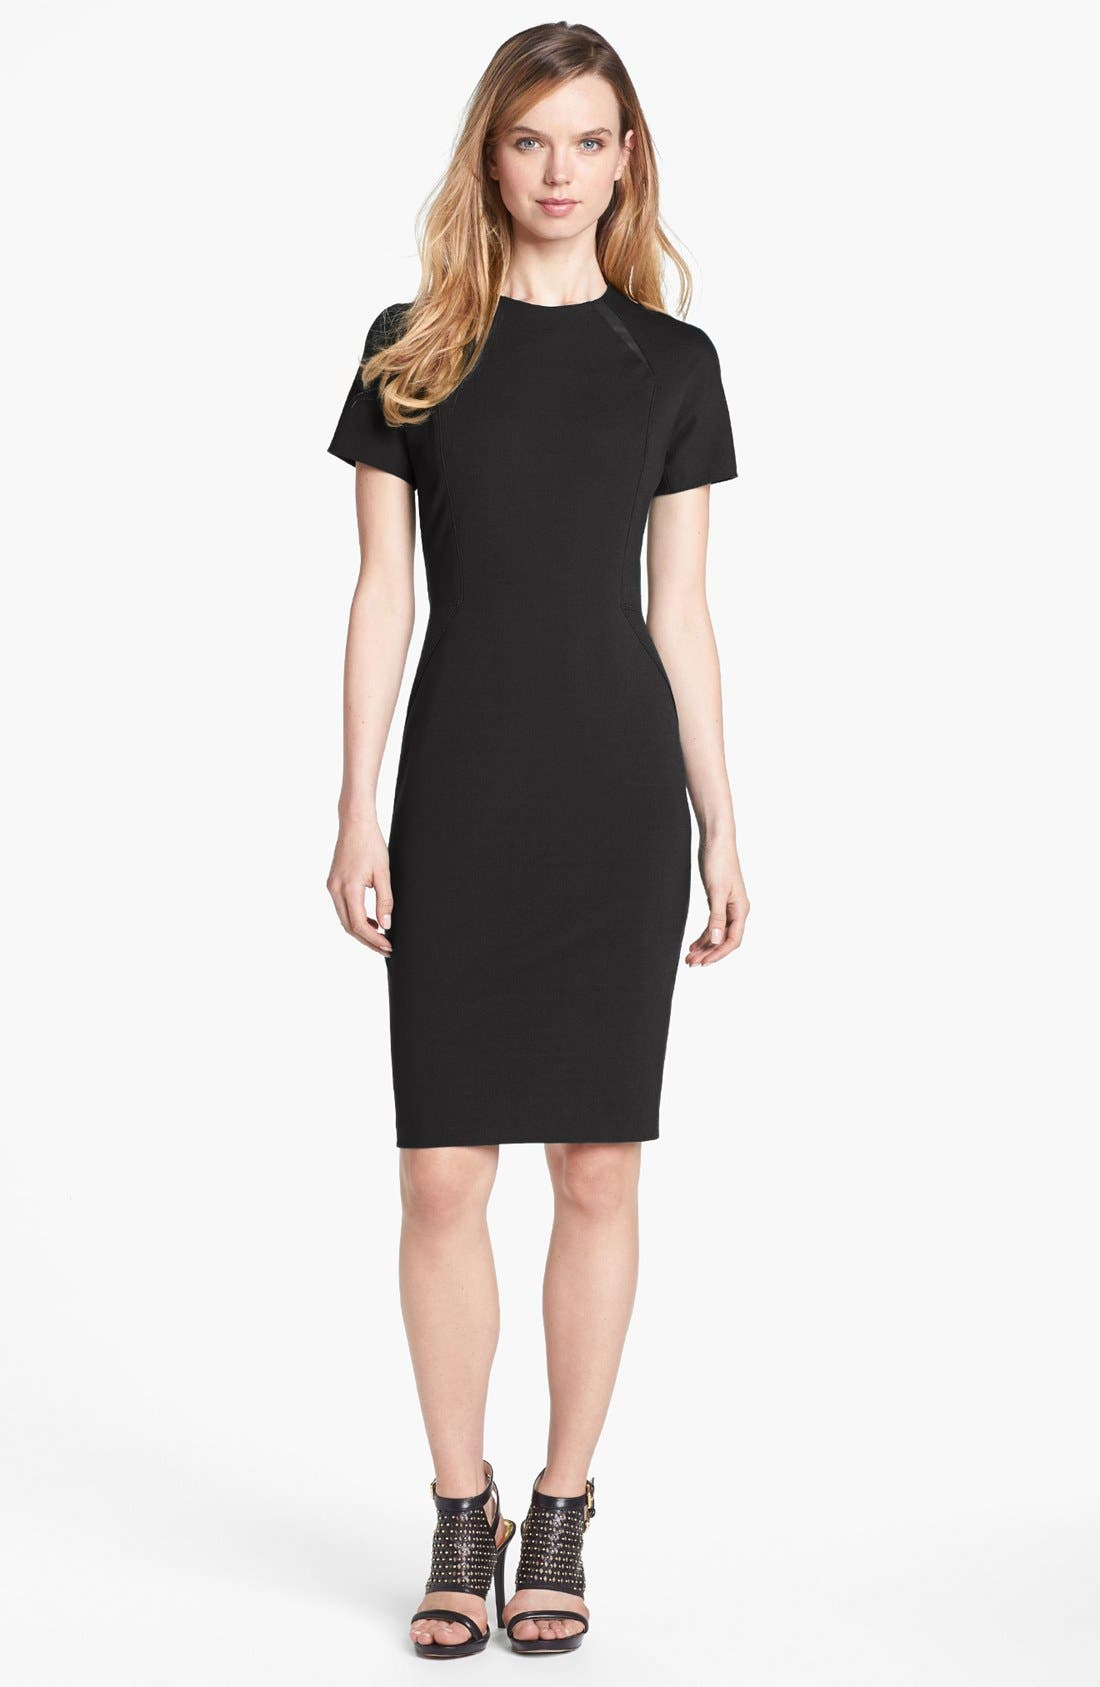 Main Image - Vince Camuto Faux Leather Detail Sheath Dress (Online Exclusive)